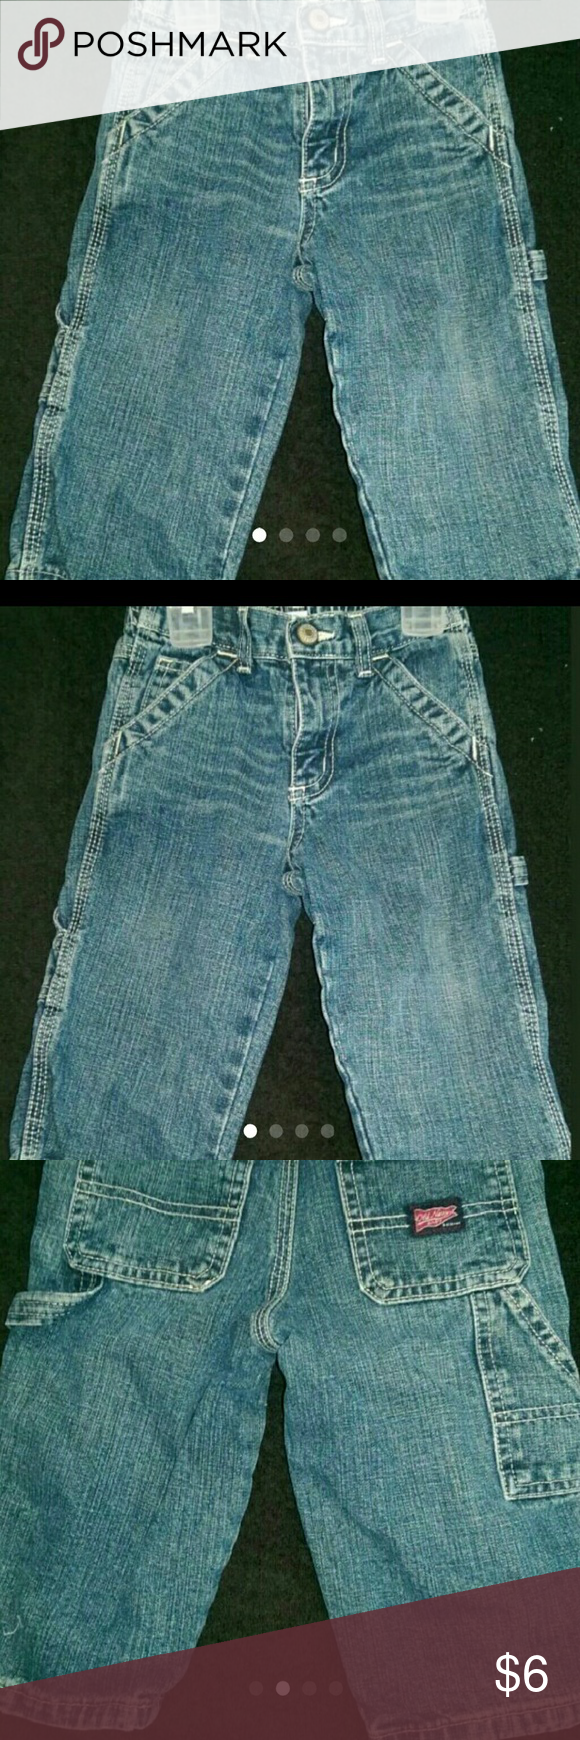 Boy Size 12-18 Month Old Navy Jeans Boy Size 12-18 Month Old Navy Jeans Great Condition wore only once All Items Come From Smoke Free Pet Free Home Combined Shipping Offered Old Navy Jeans